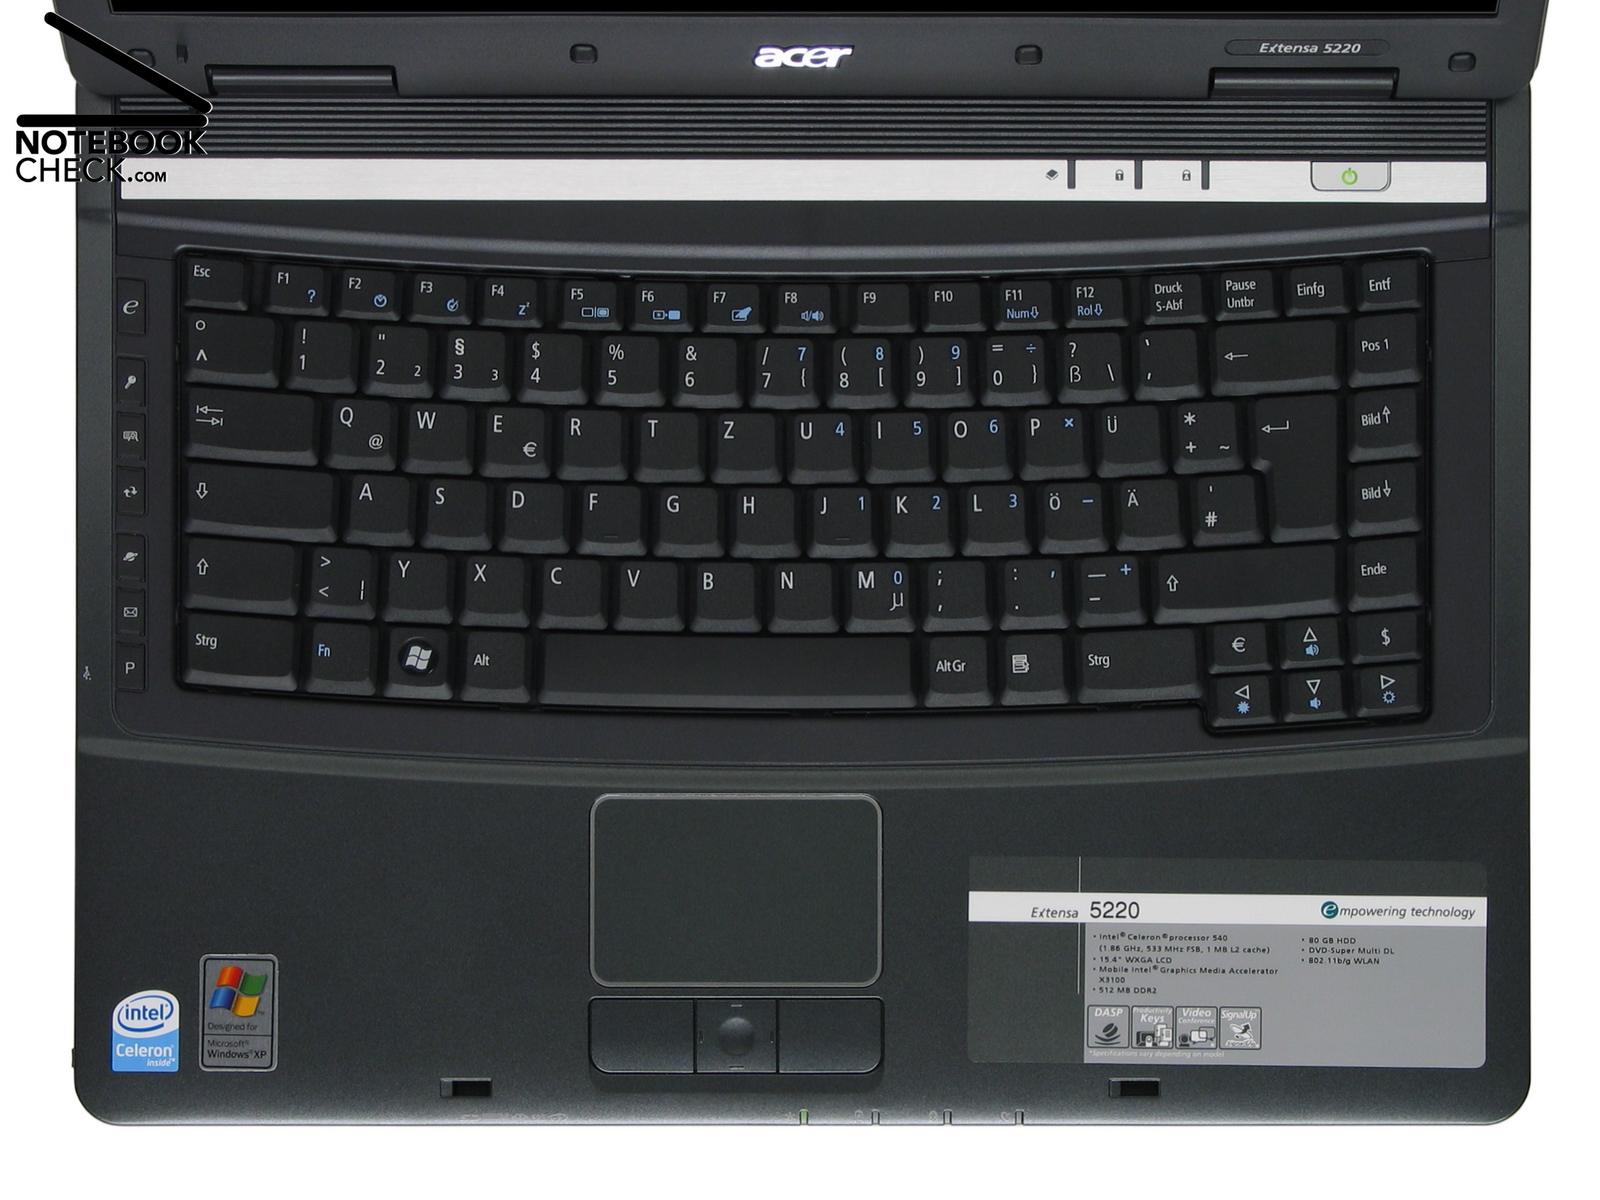 ACER ASPIRE 5220 VGA DRIVERS WINDOWS 7 (2019)